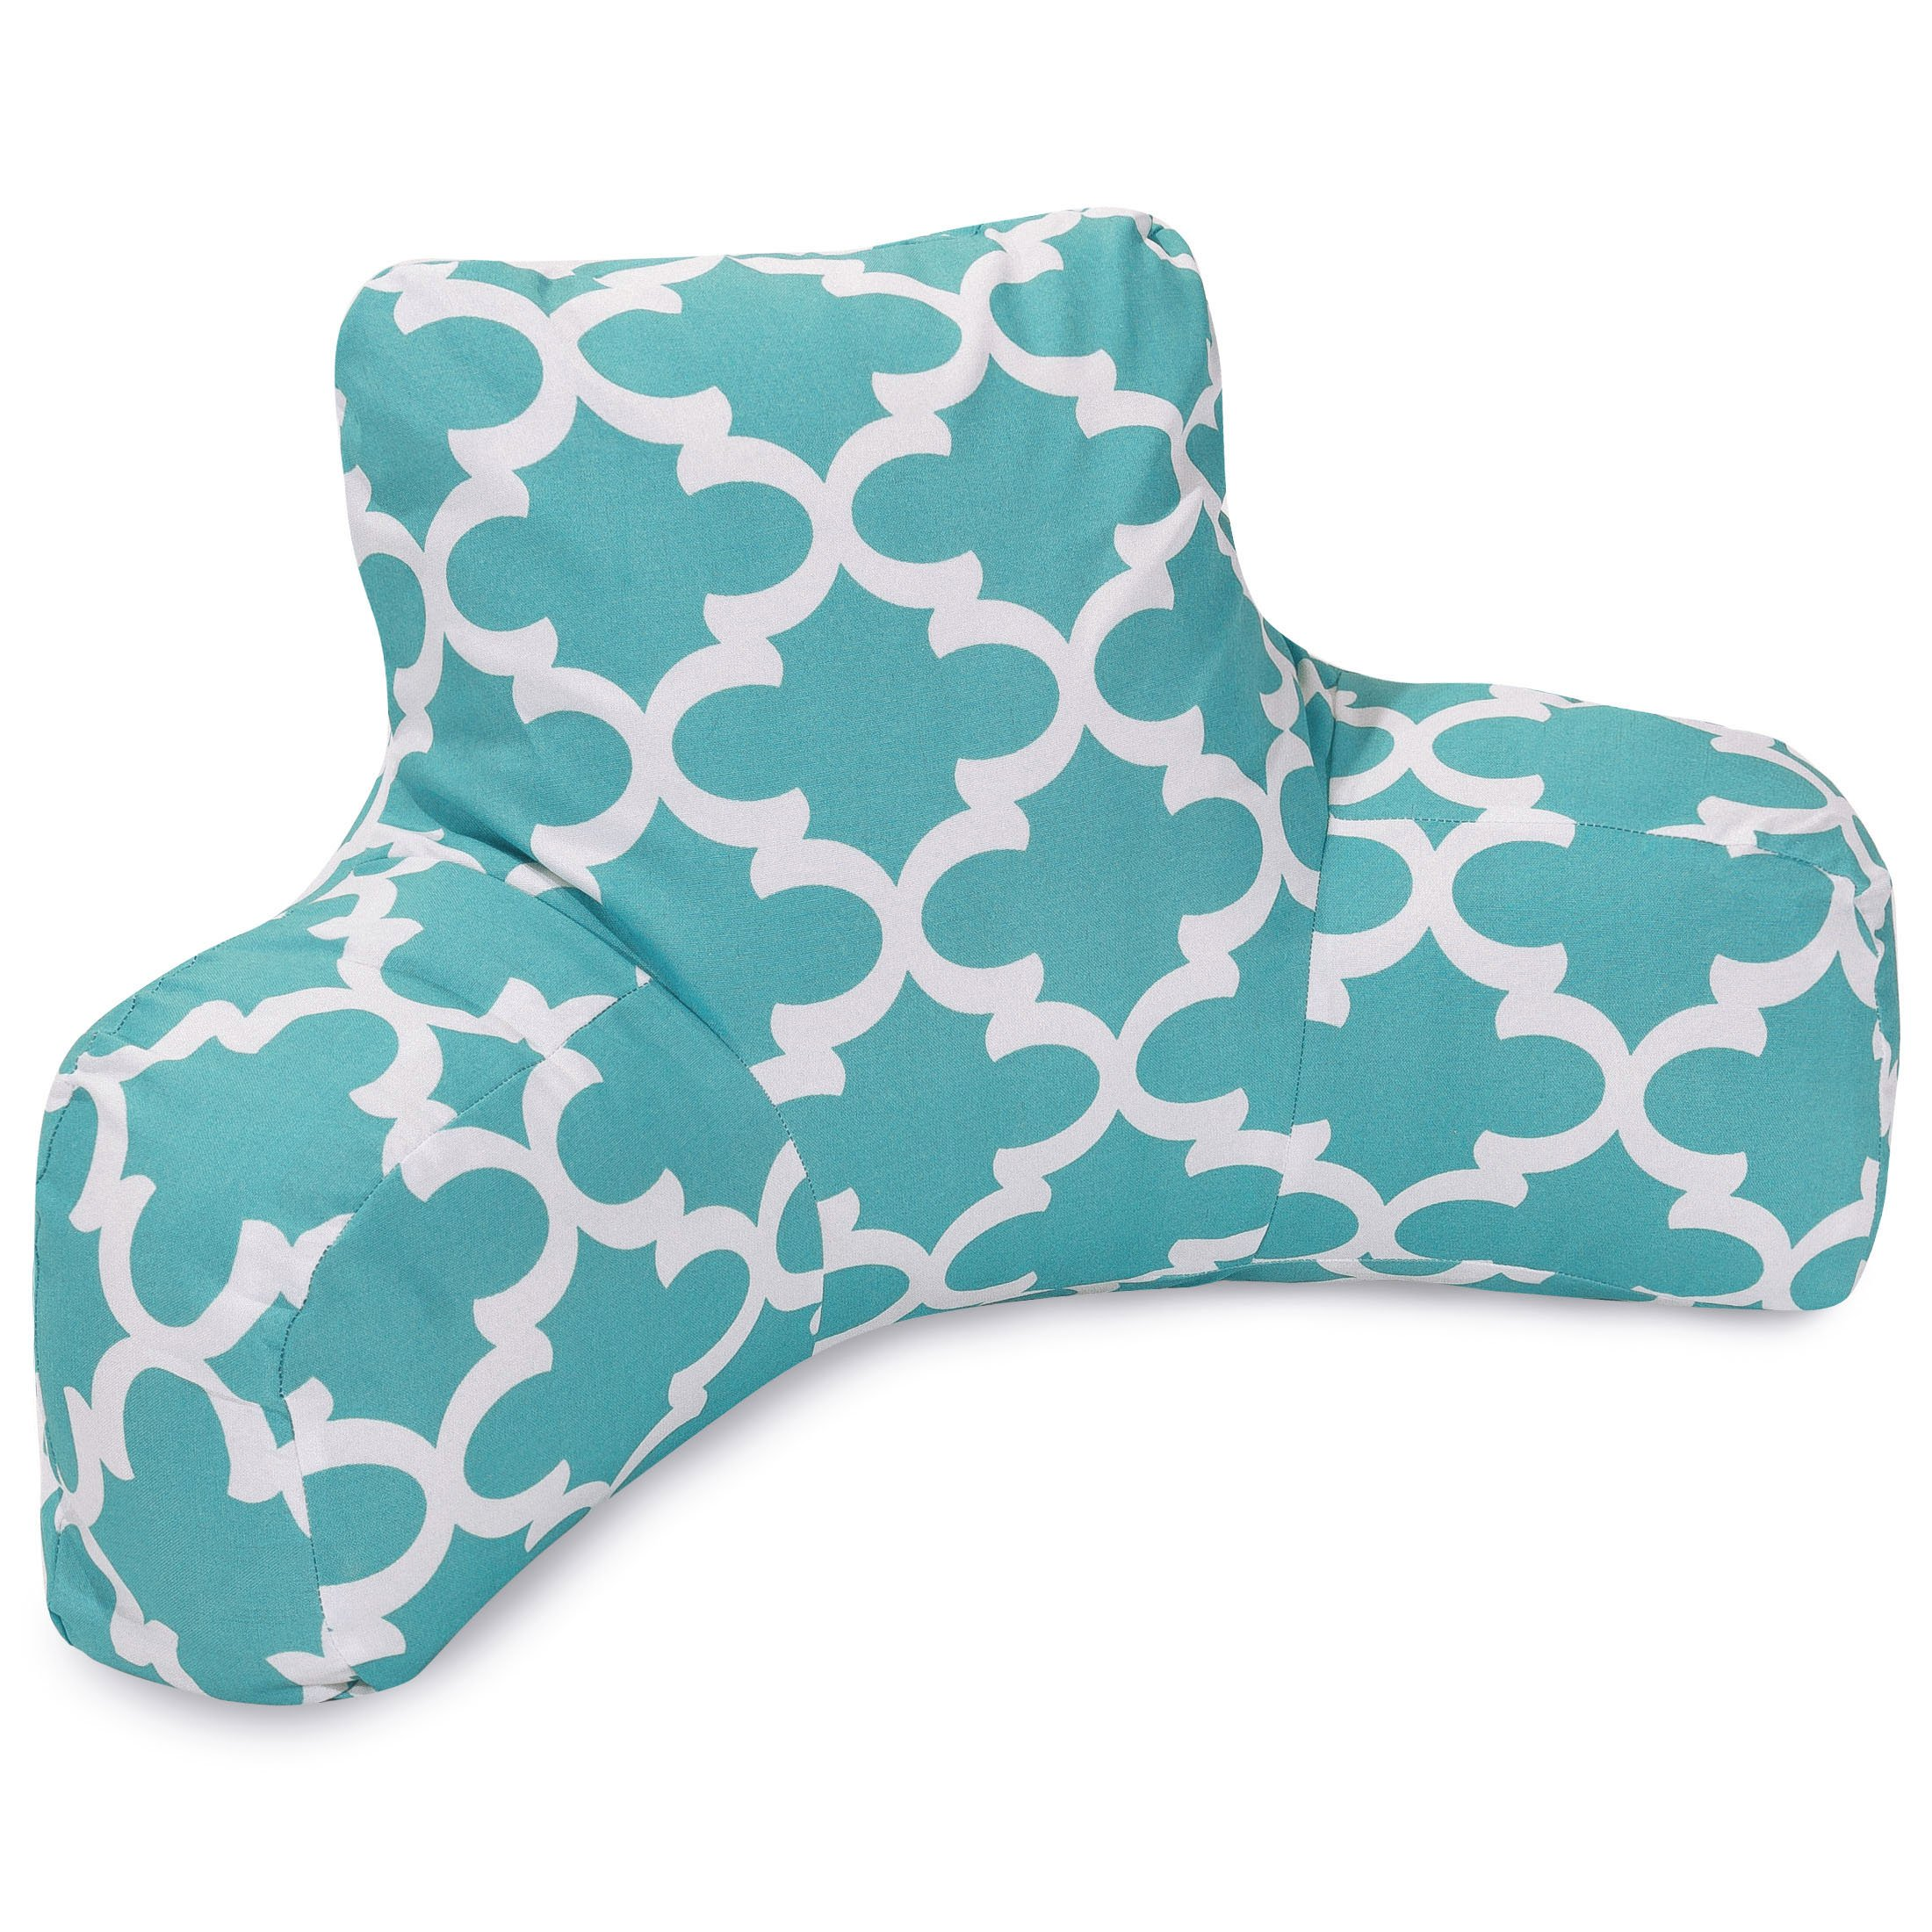 Majestic Home Goods Trellis Reading Pillow, Teal